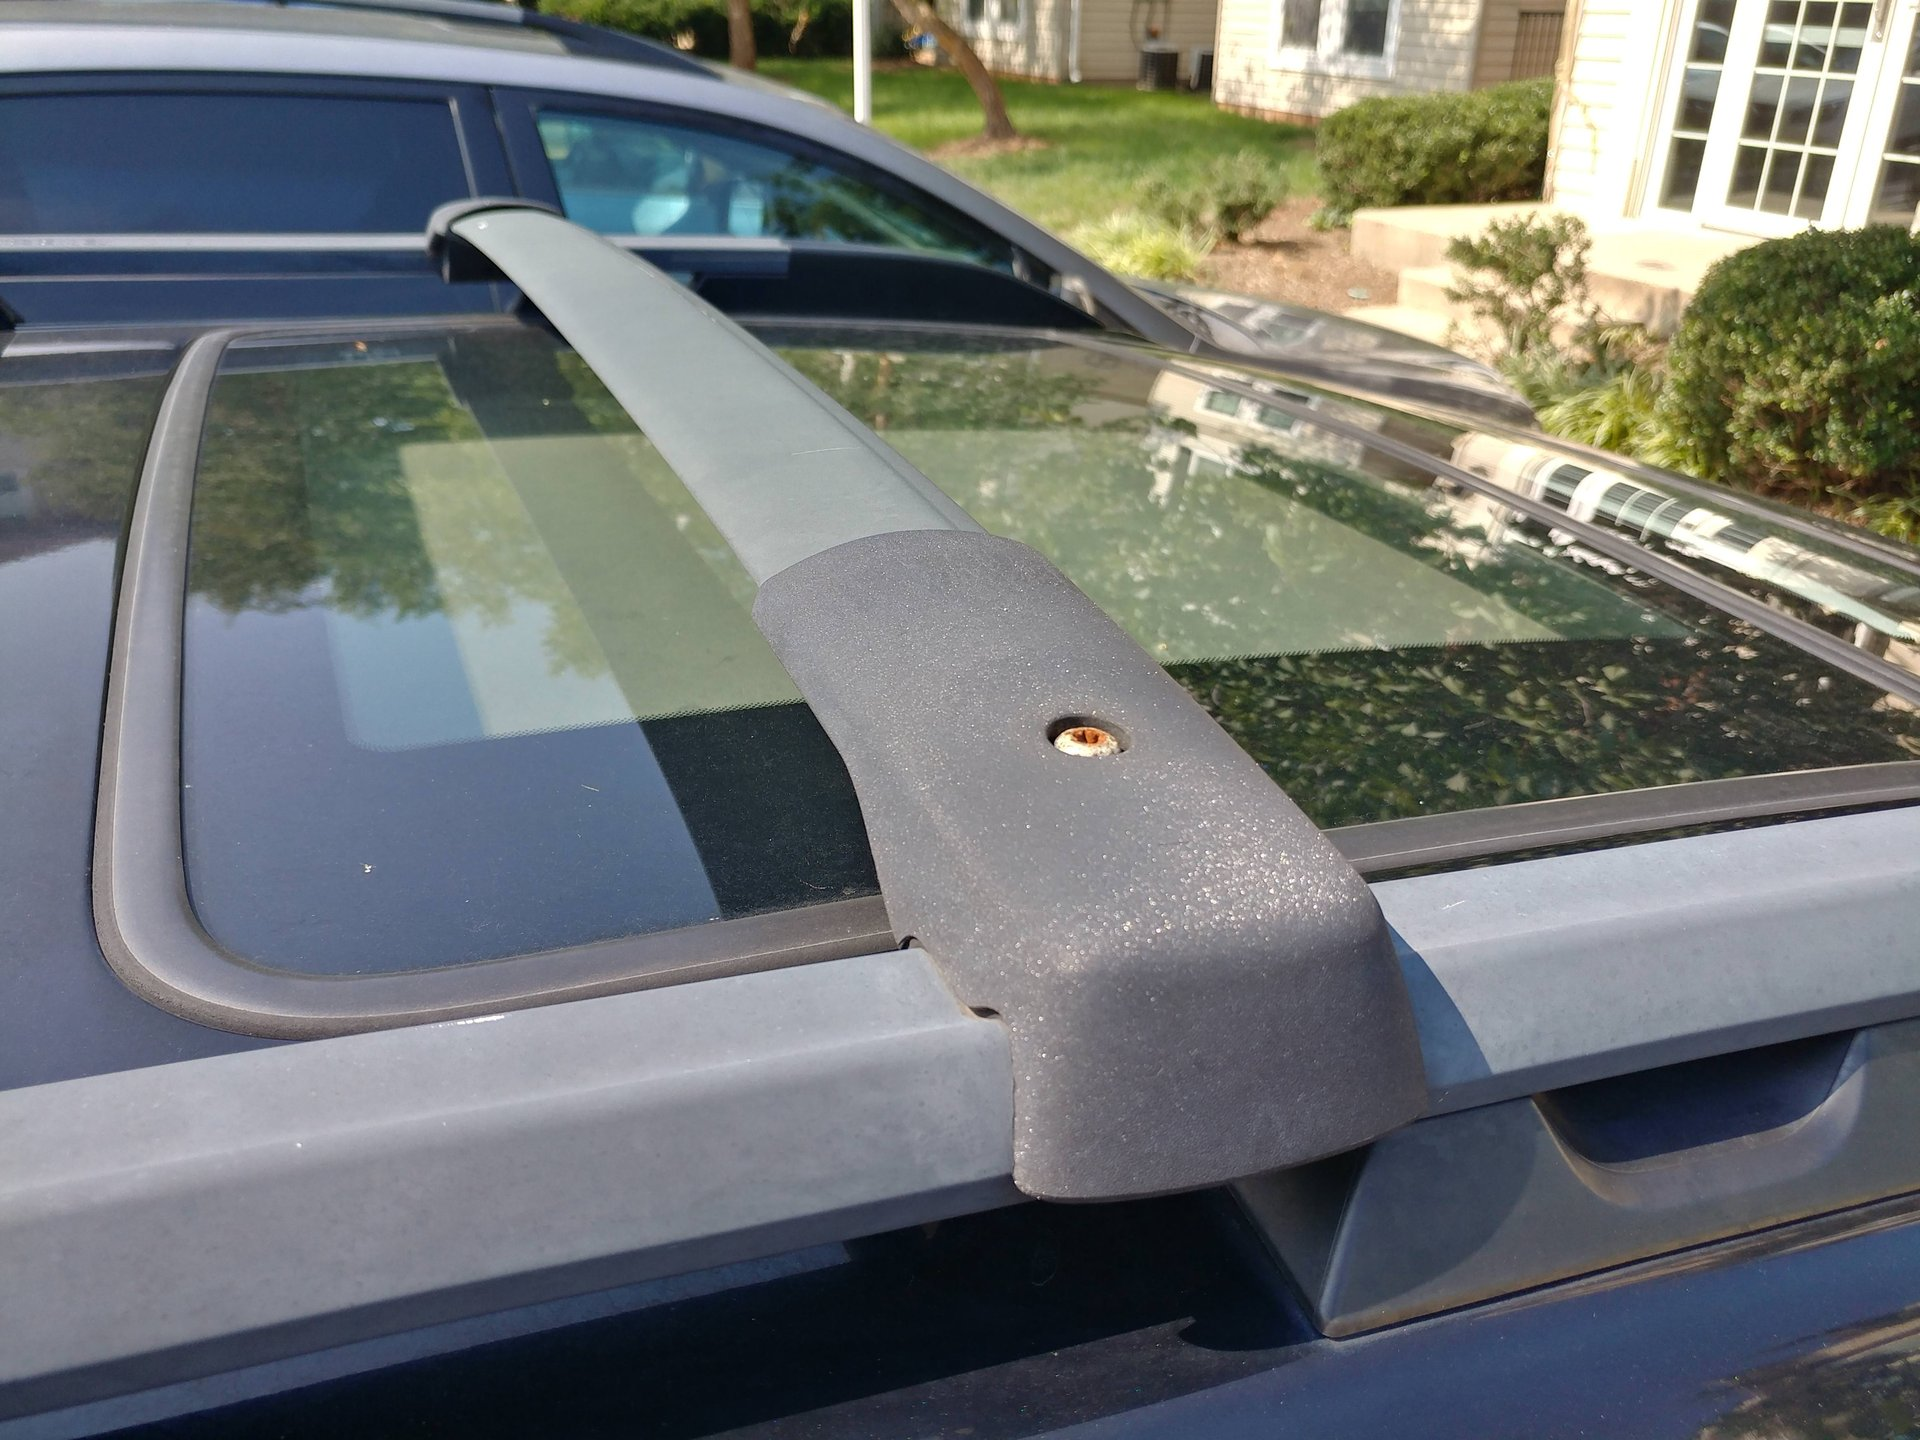 Faded, Oxidized, Bleached Out Aluminium Roof Rack Renewal | Subaru